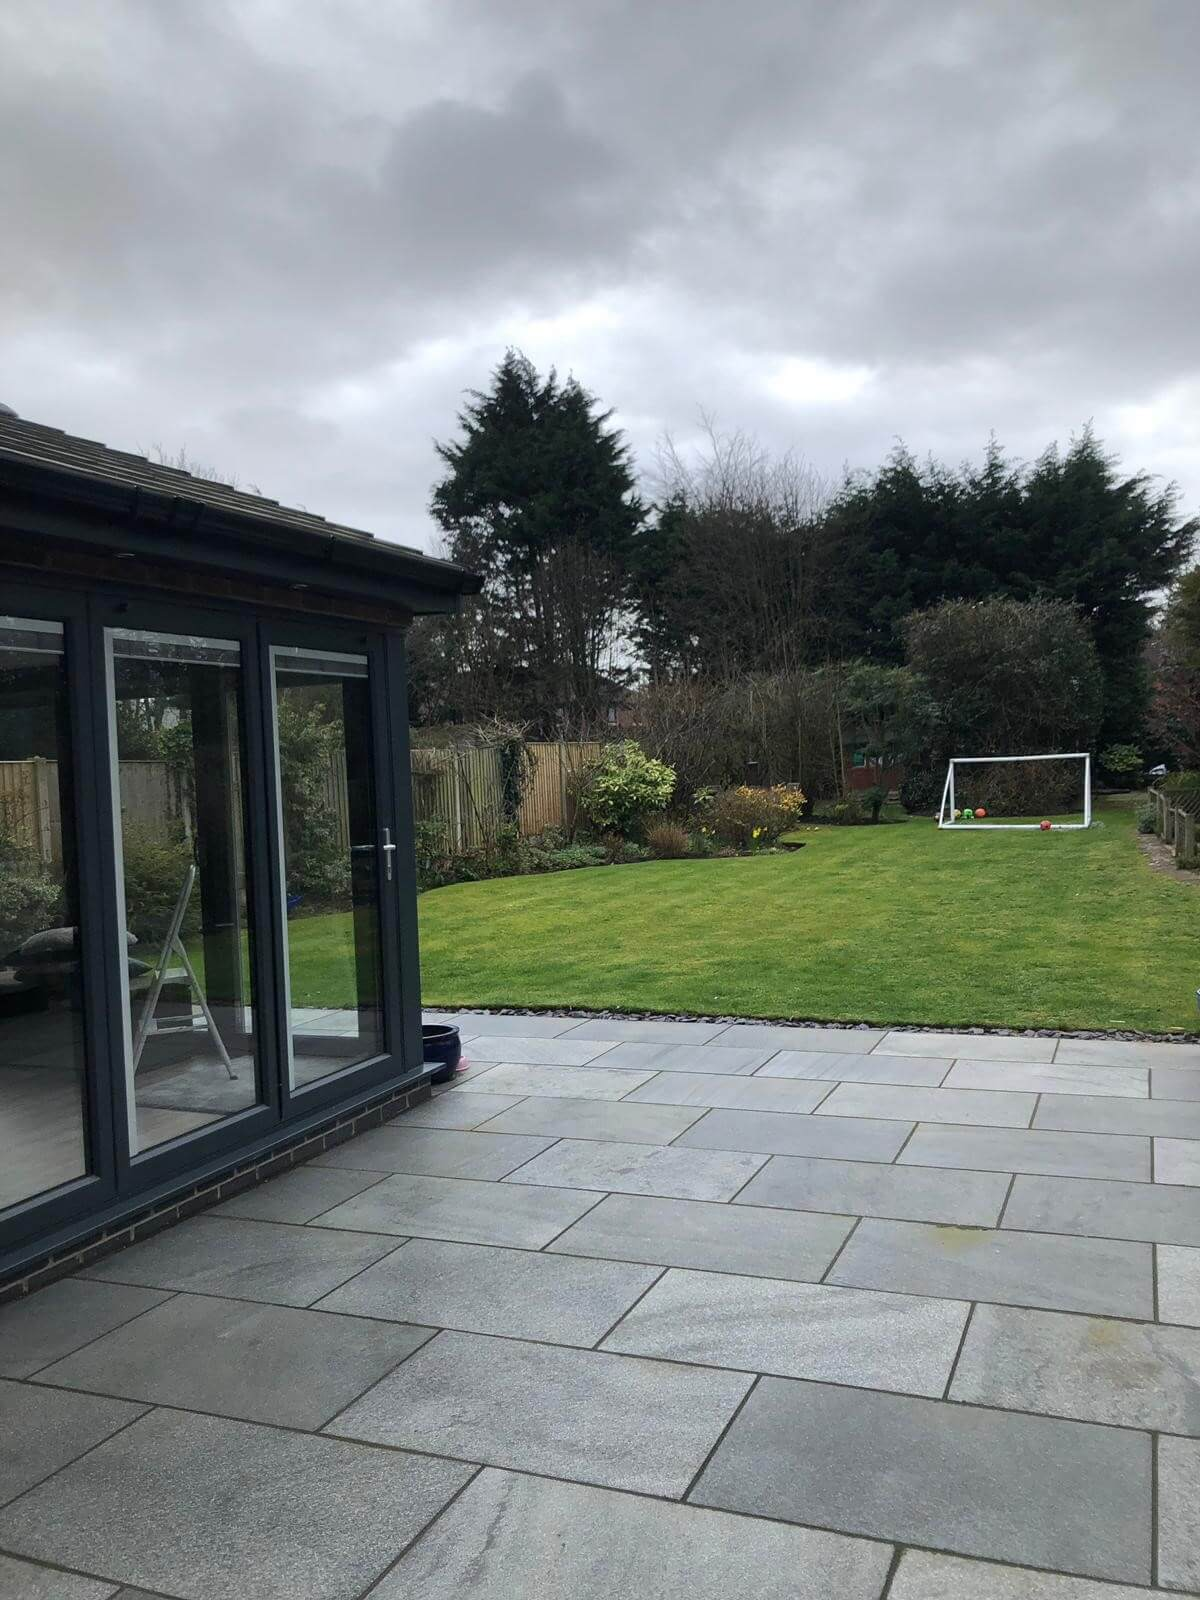 This image shows the view from the back of an extension project in Aughton, Ormskirk.